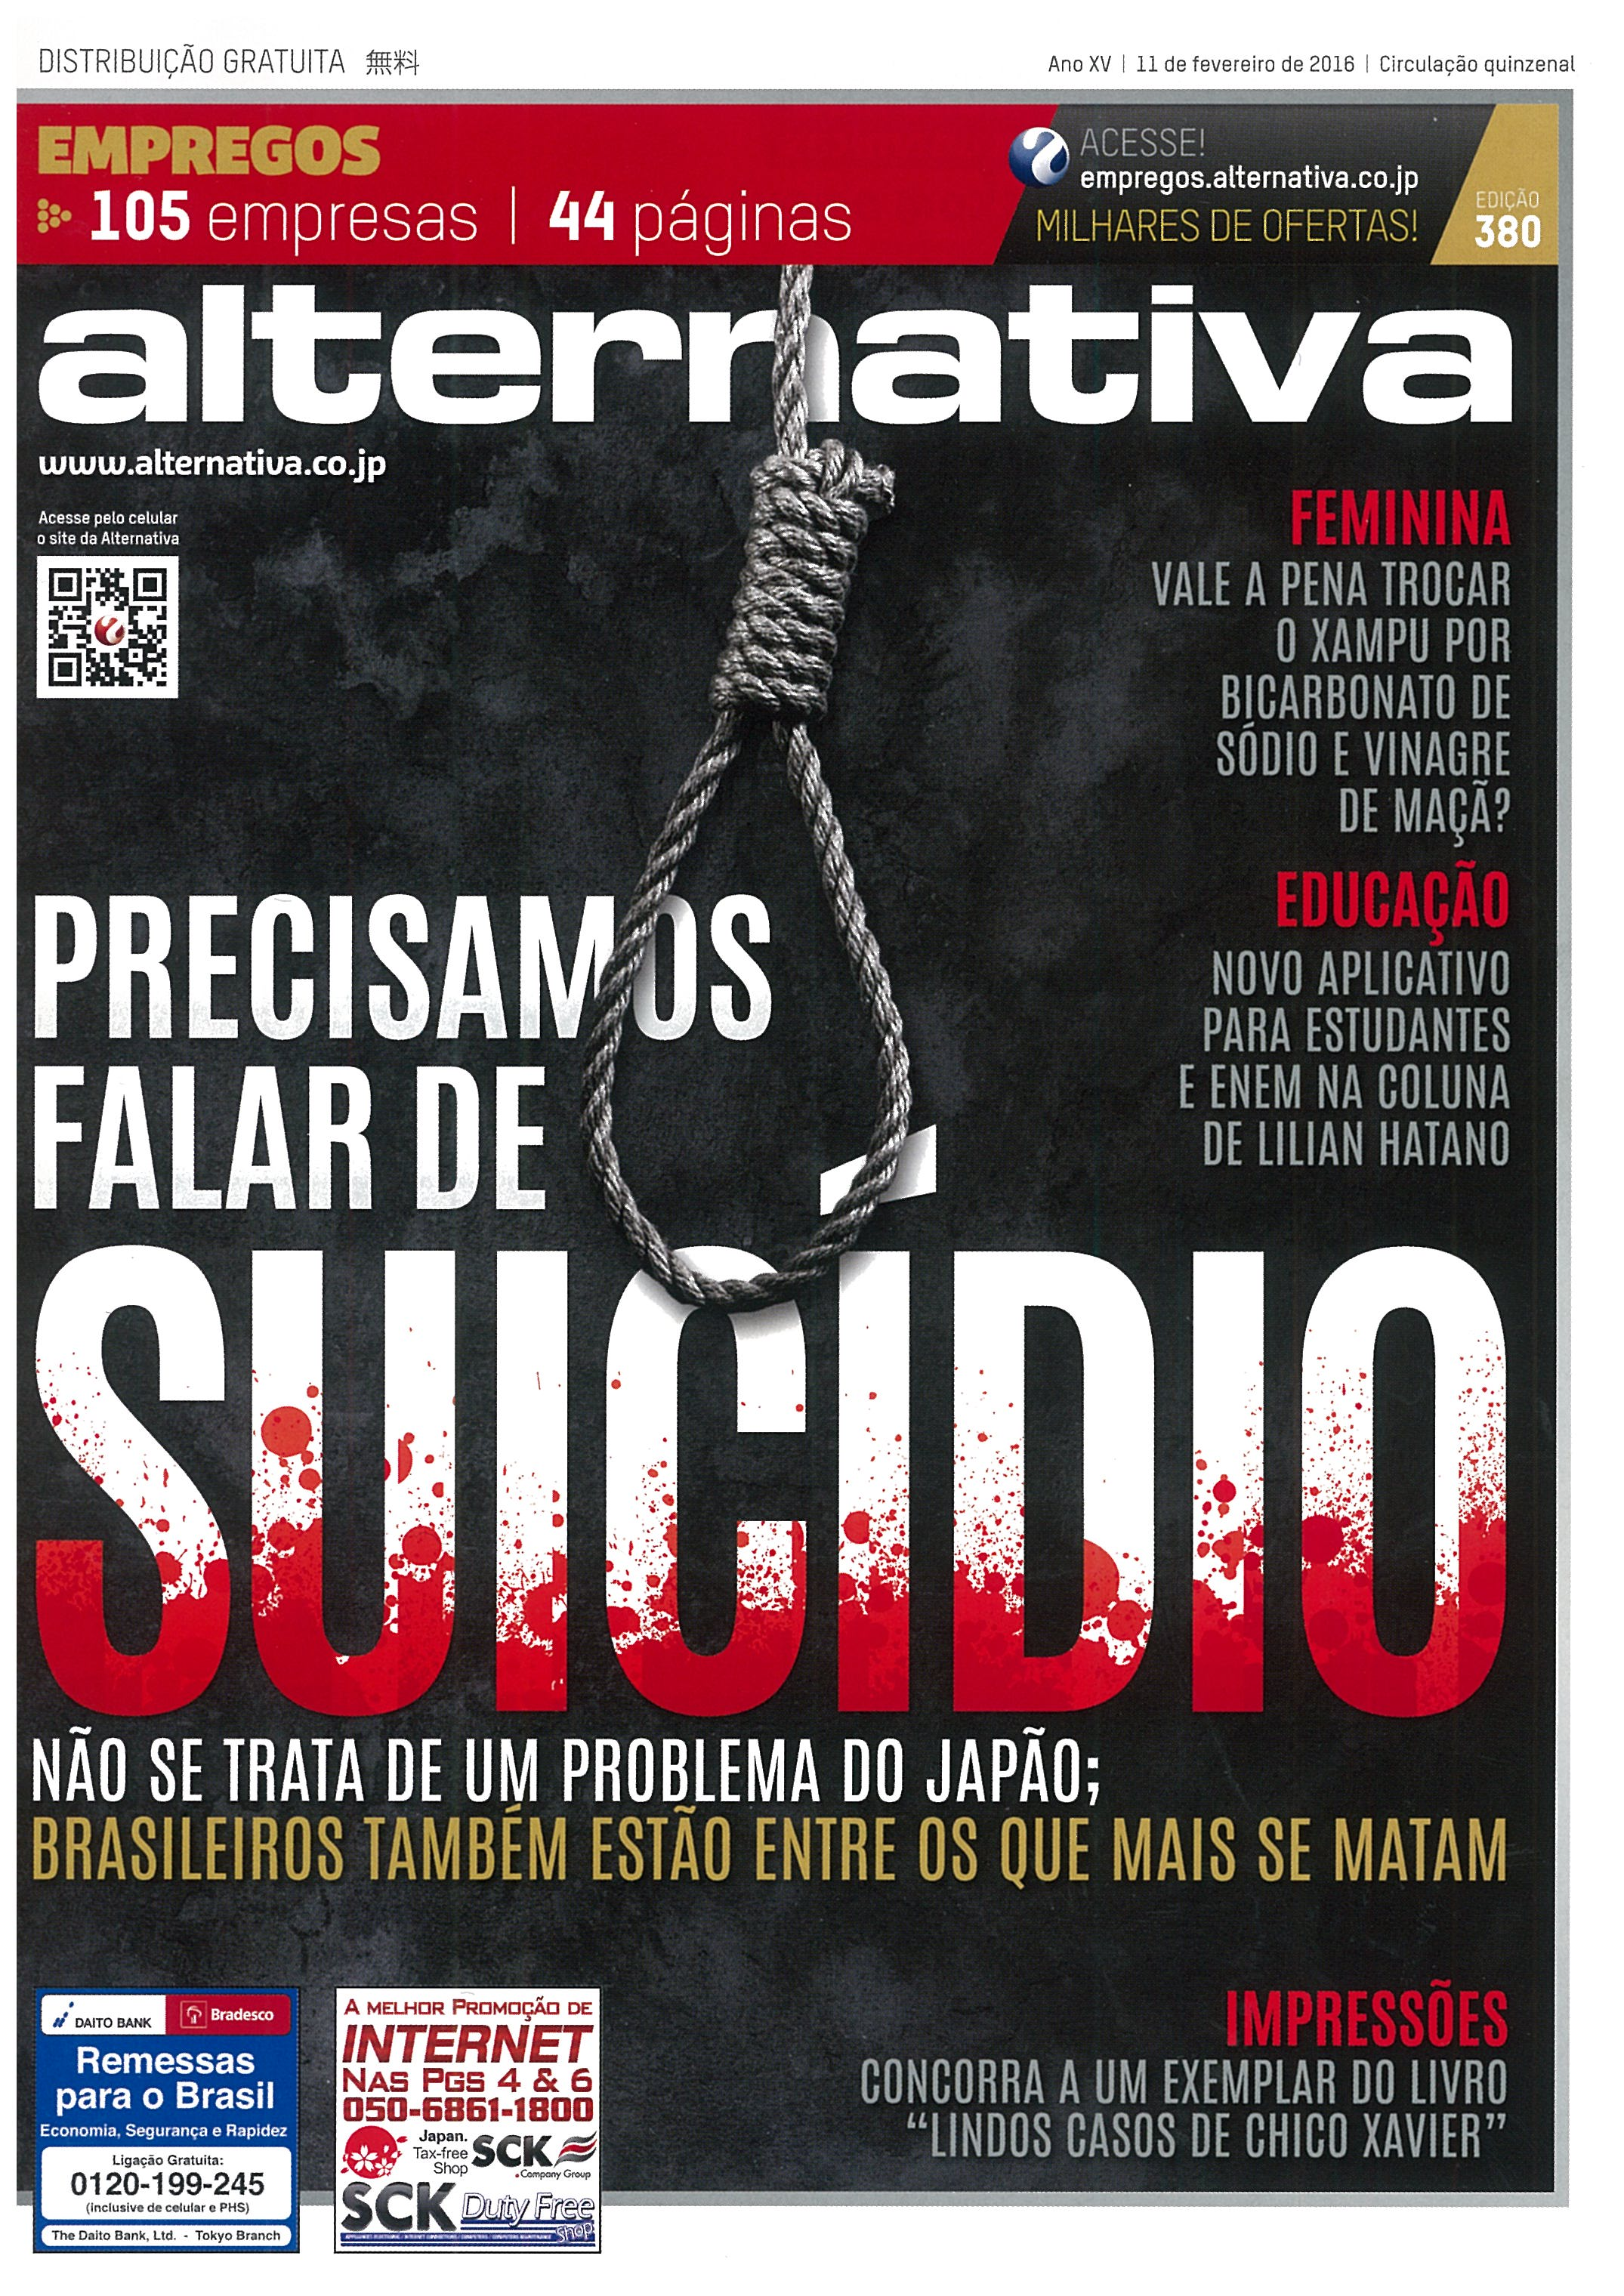 Entrevista Alternativa #PopLife Capa.jpg